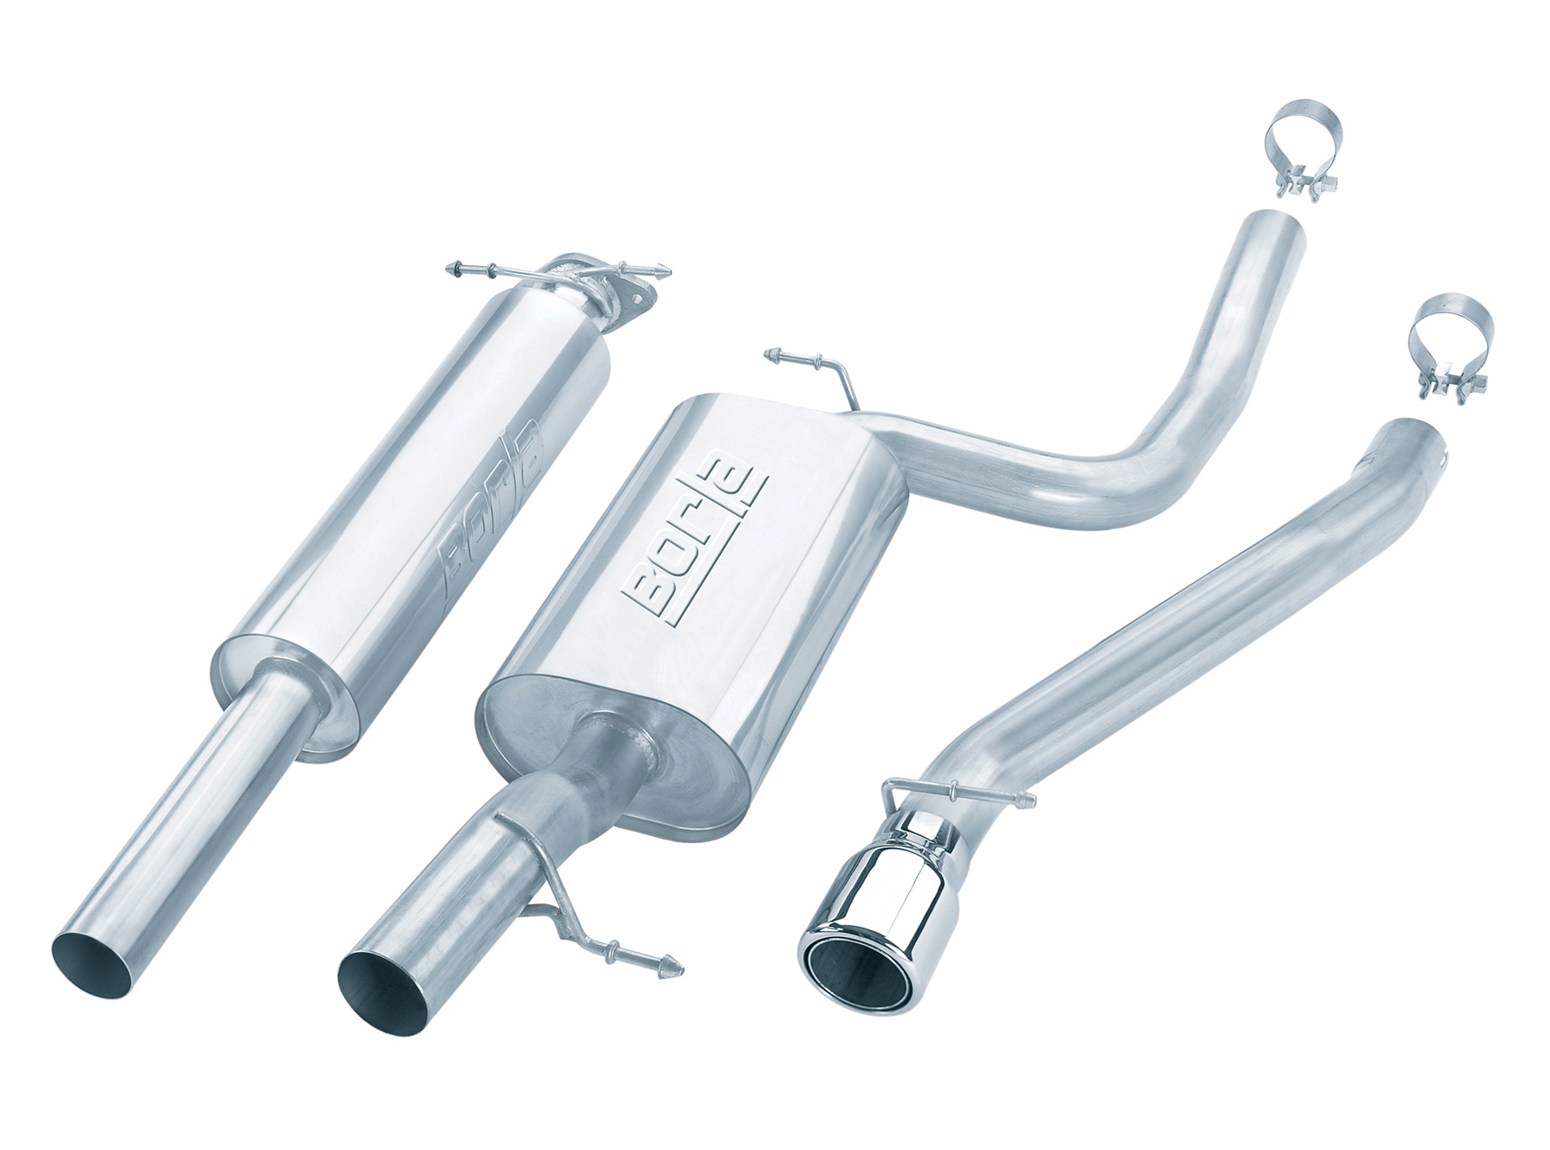 "Ford Focus Svt 2.0l 2002-2004 Borla 2.5"" Cat-Back Exhaust System - Single Round Half-Rolled Angle-Cut Phantom"